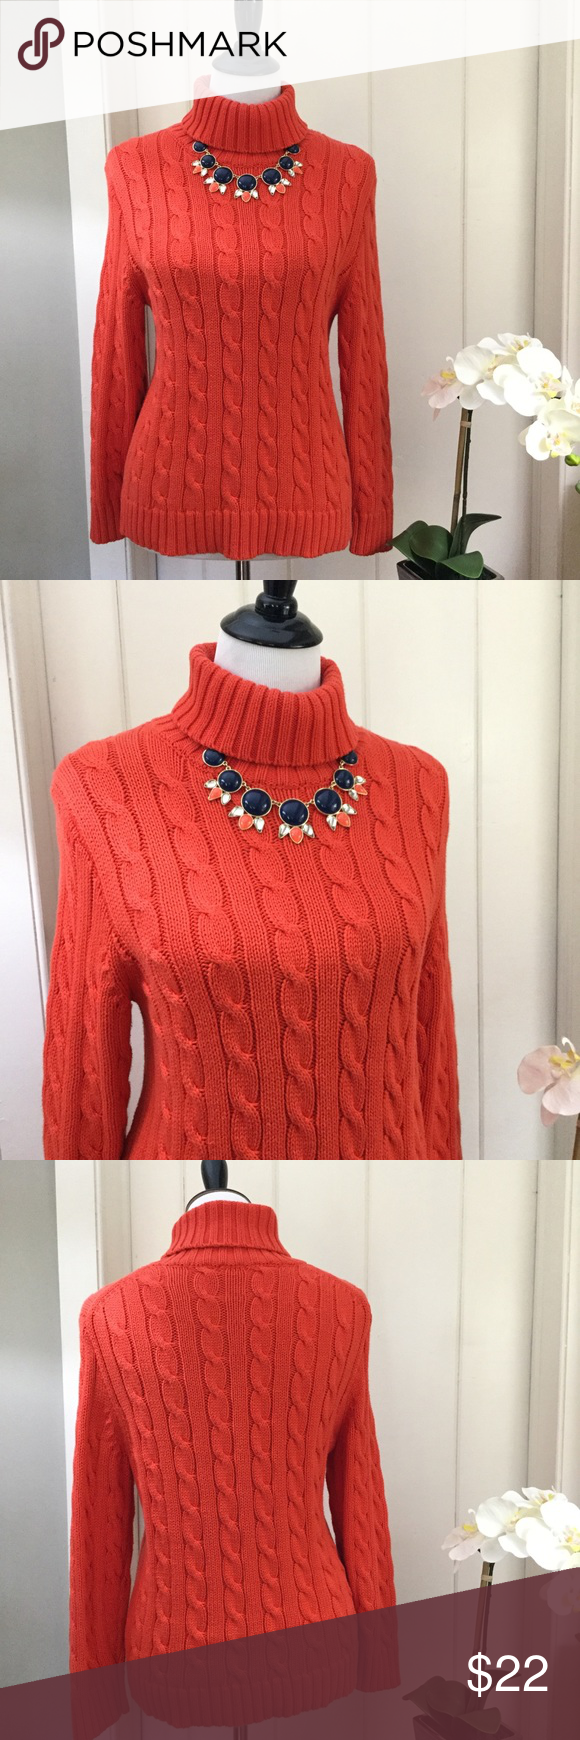 J CREW Orange Cotton Cable Knit Turtleneck Sweater | Cable ...